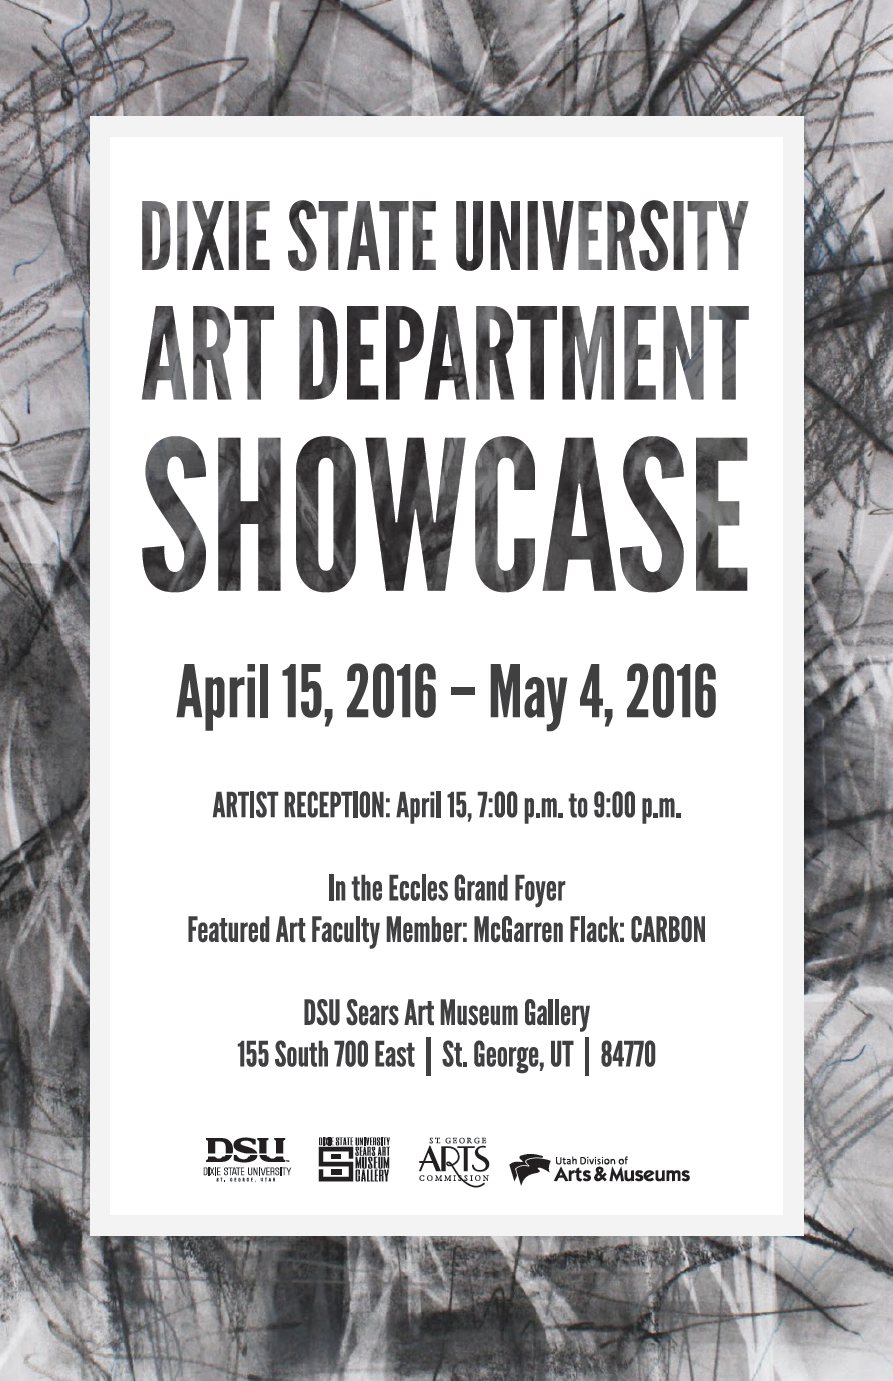 2016 Art Department Showcase